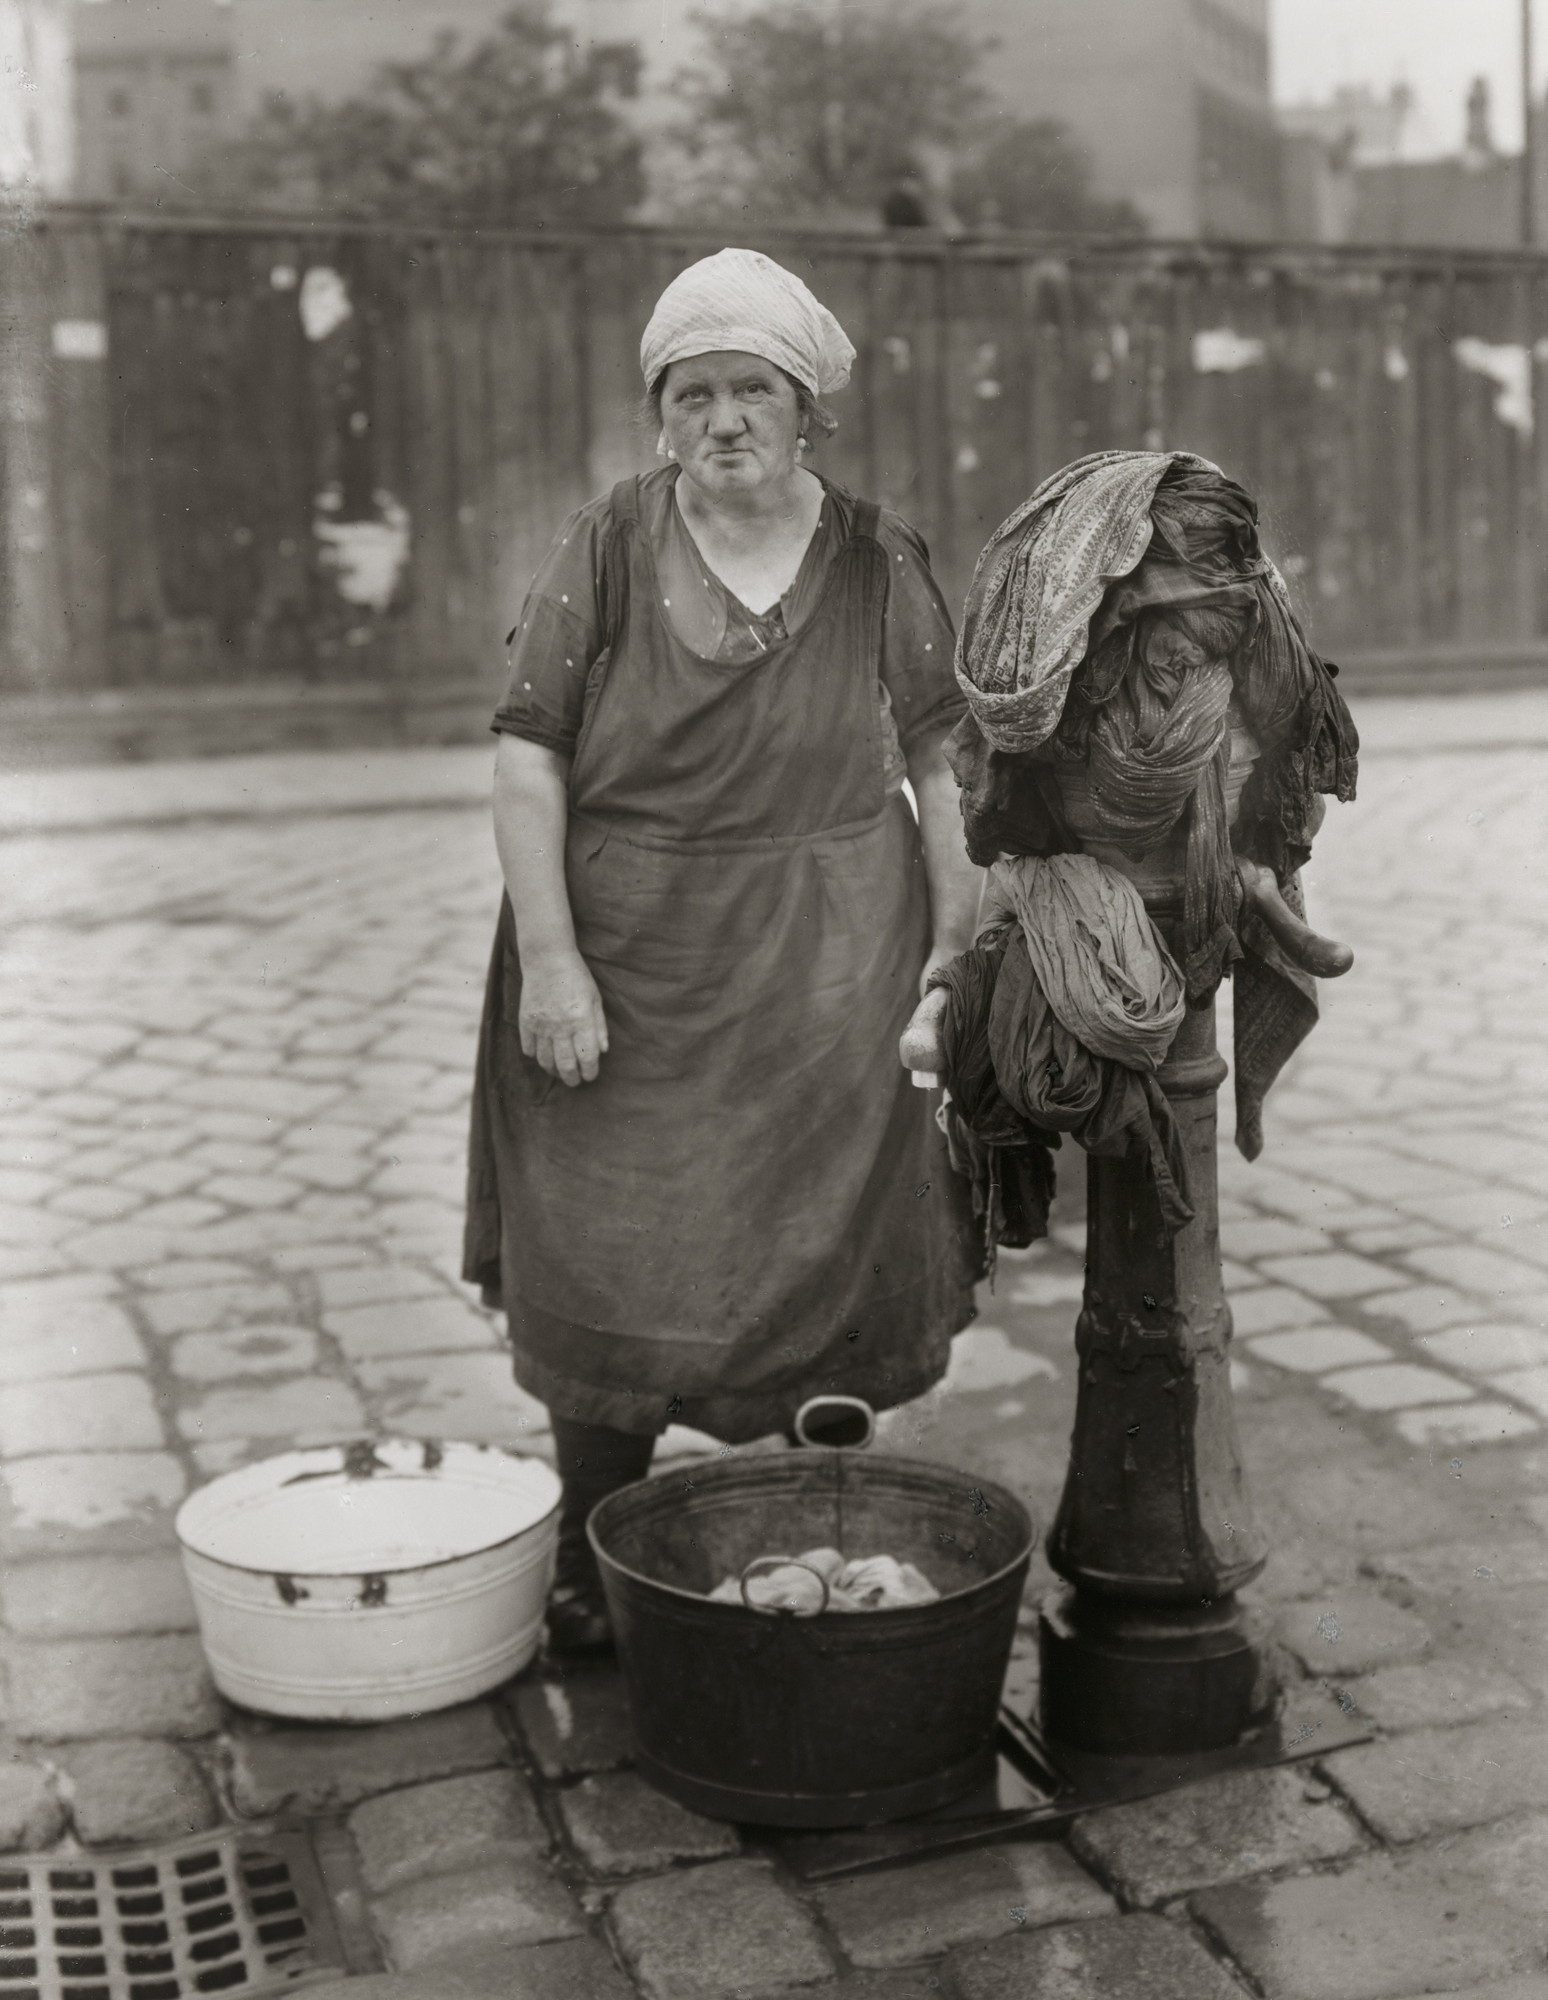 August Sander. Washerwoman. c. 1930